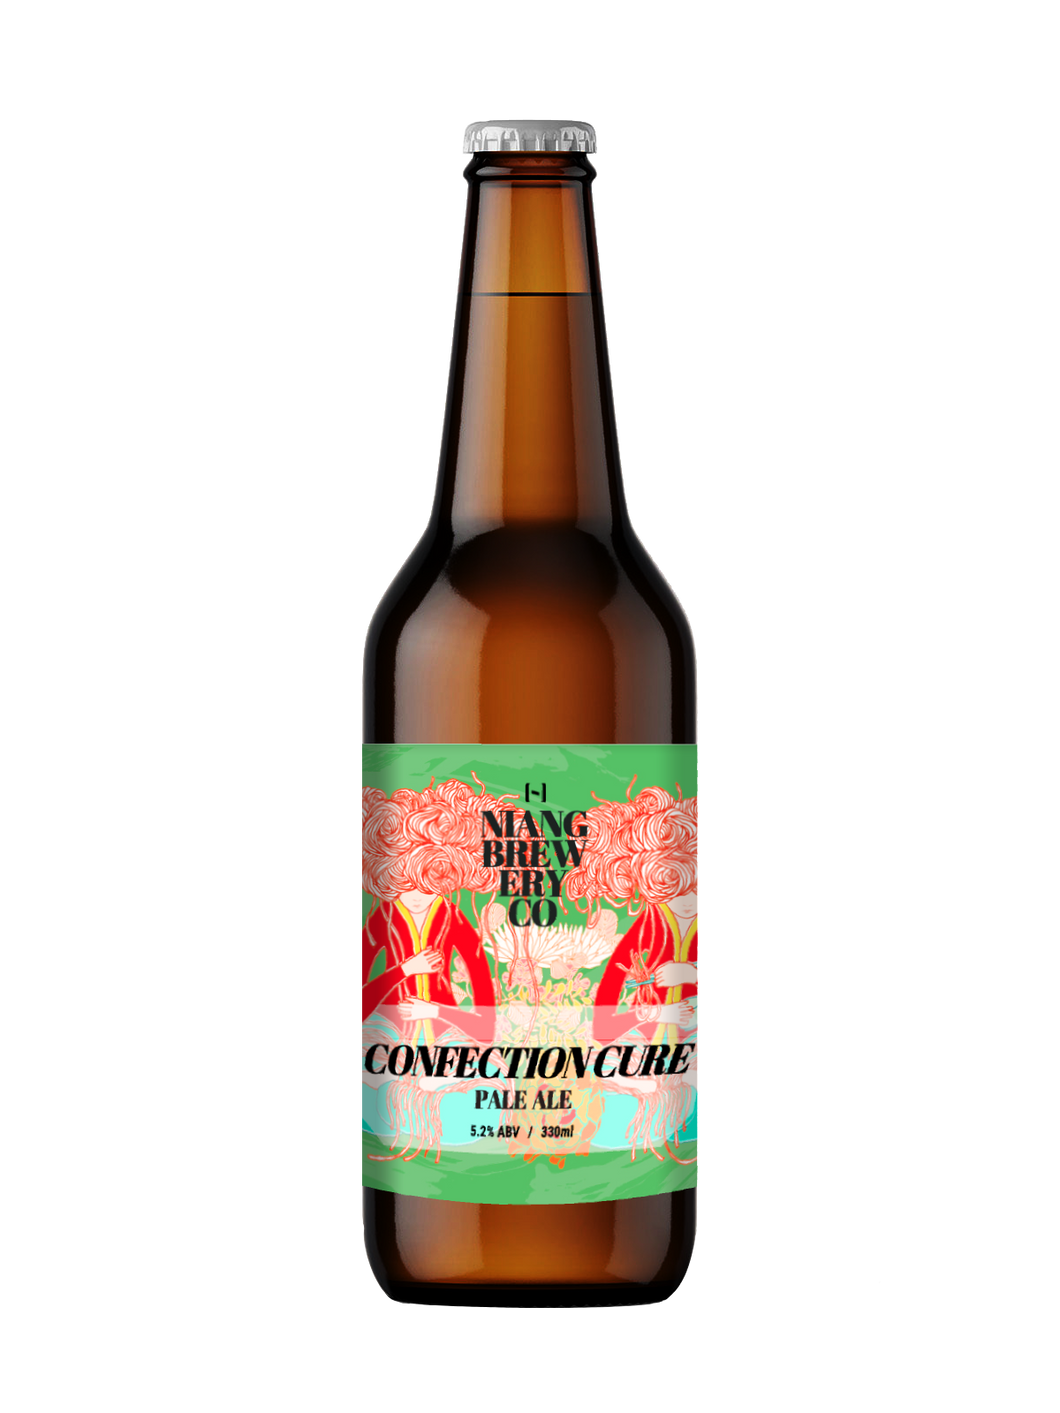 Confection Cure - Pale Ale (5.2% ABV)